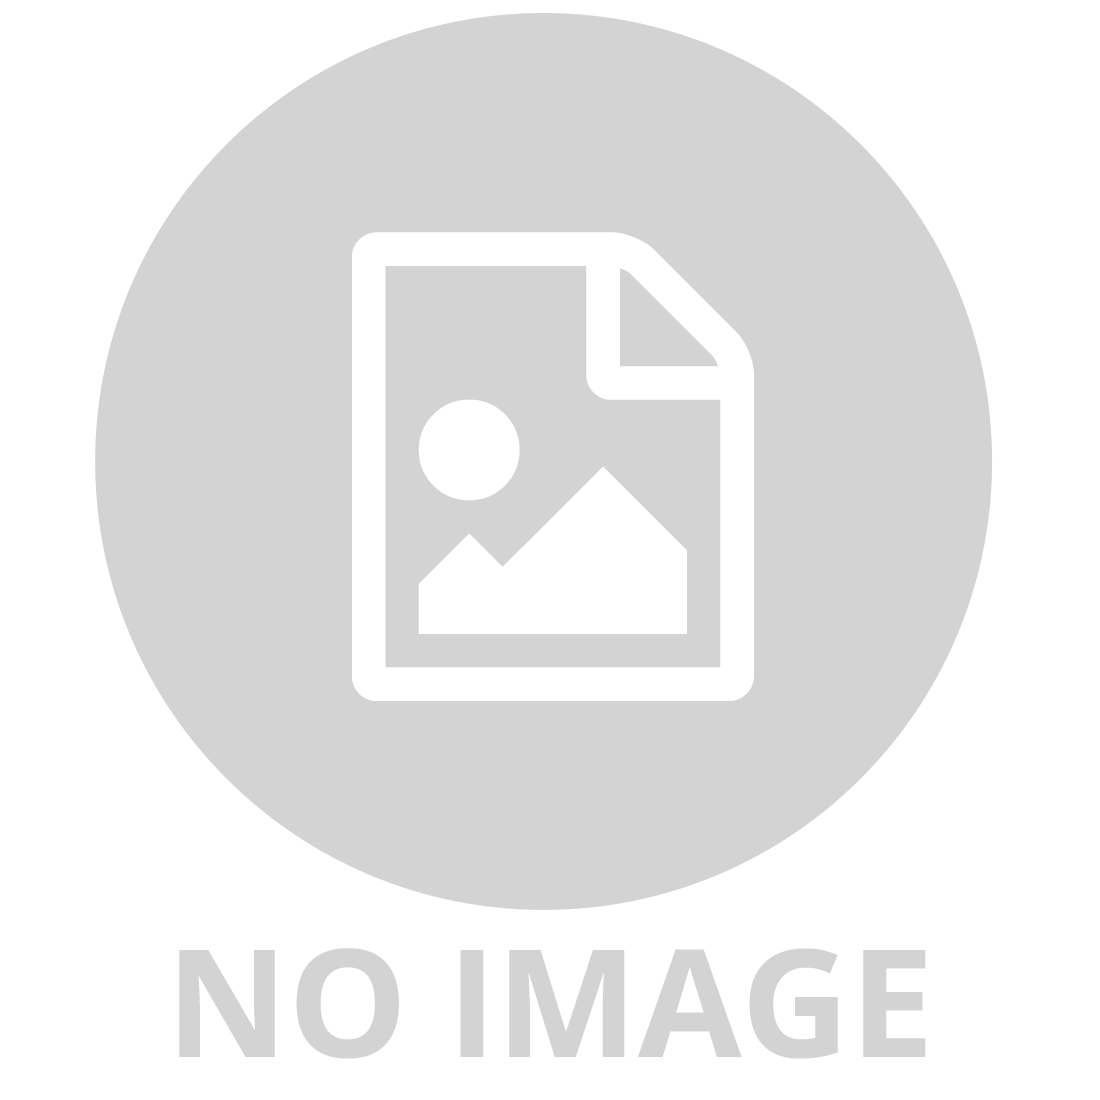 FAMILY FEUD GAME NIGHT